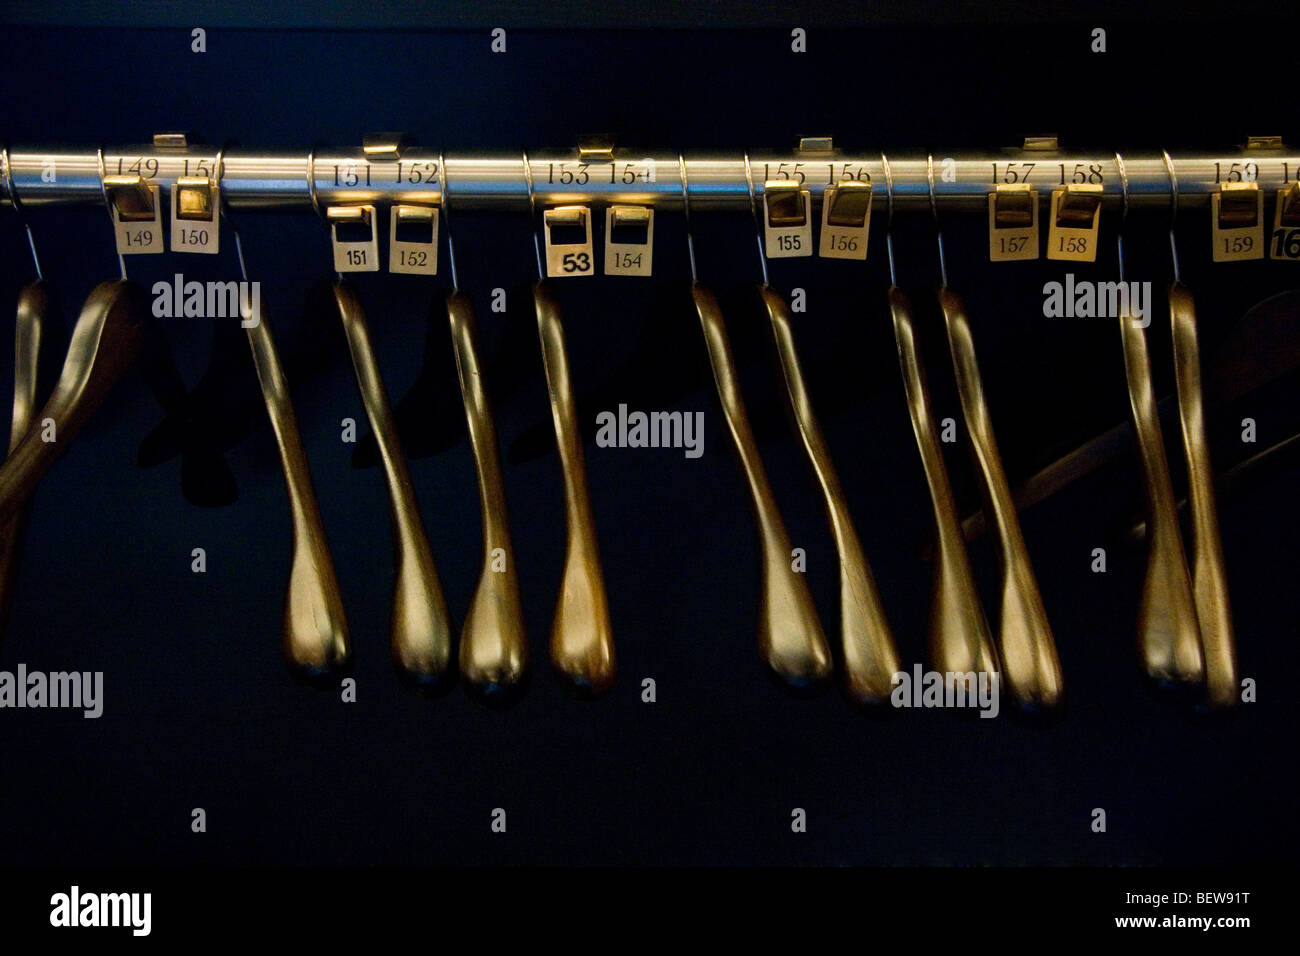 Clothes rail with golden empty hangers, close-up - Stock Image